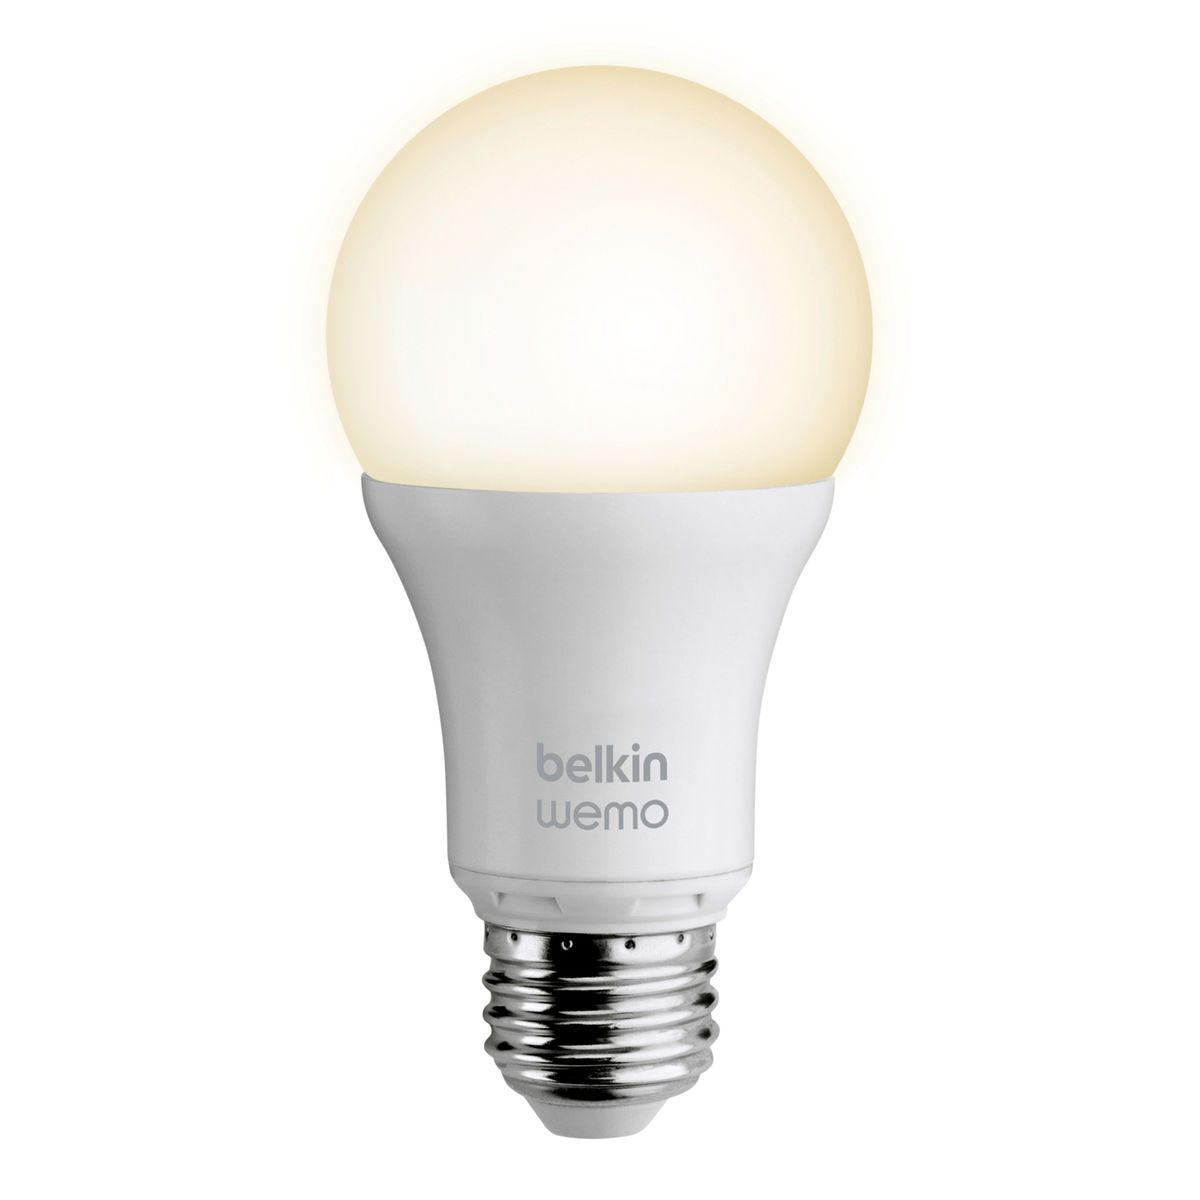 Belkin WeMo® 9.5W E27 Smart WiFi & 3G Controlled Λάμπα LED